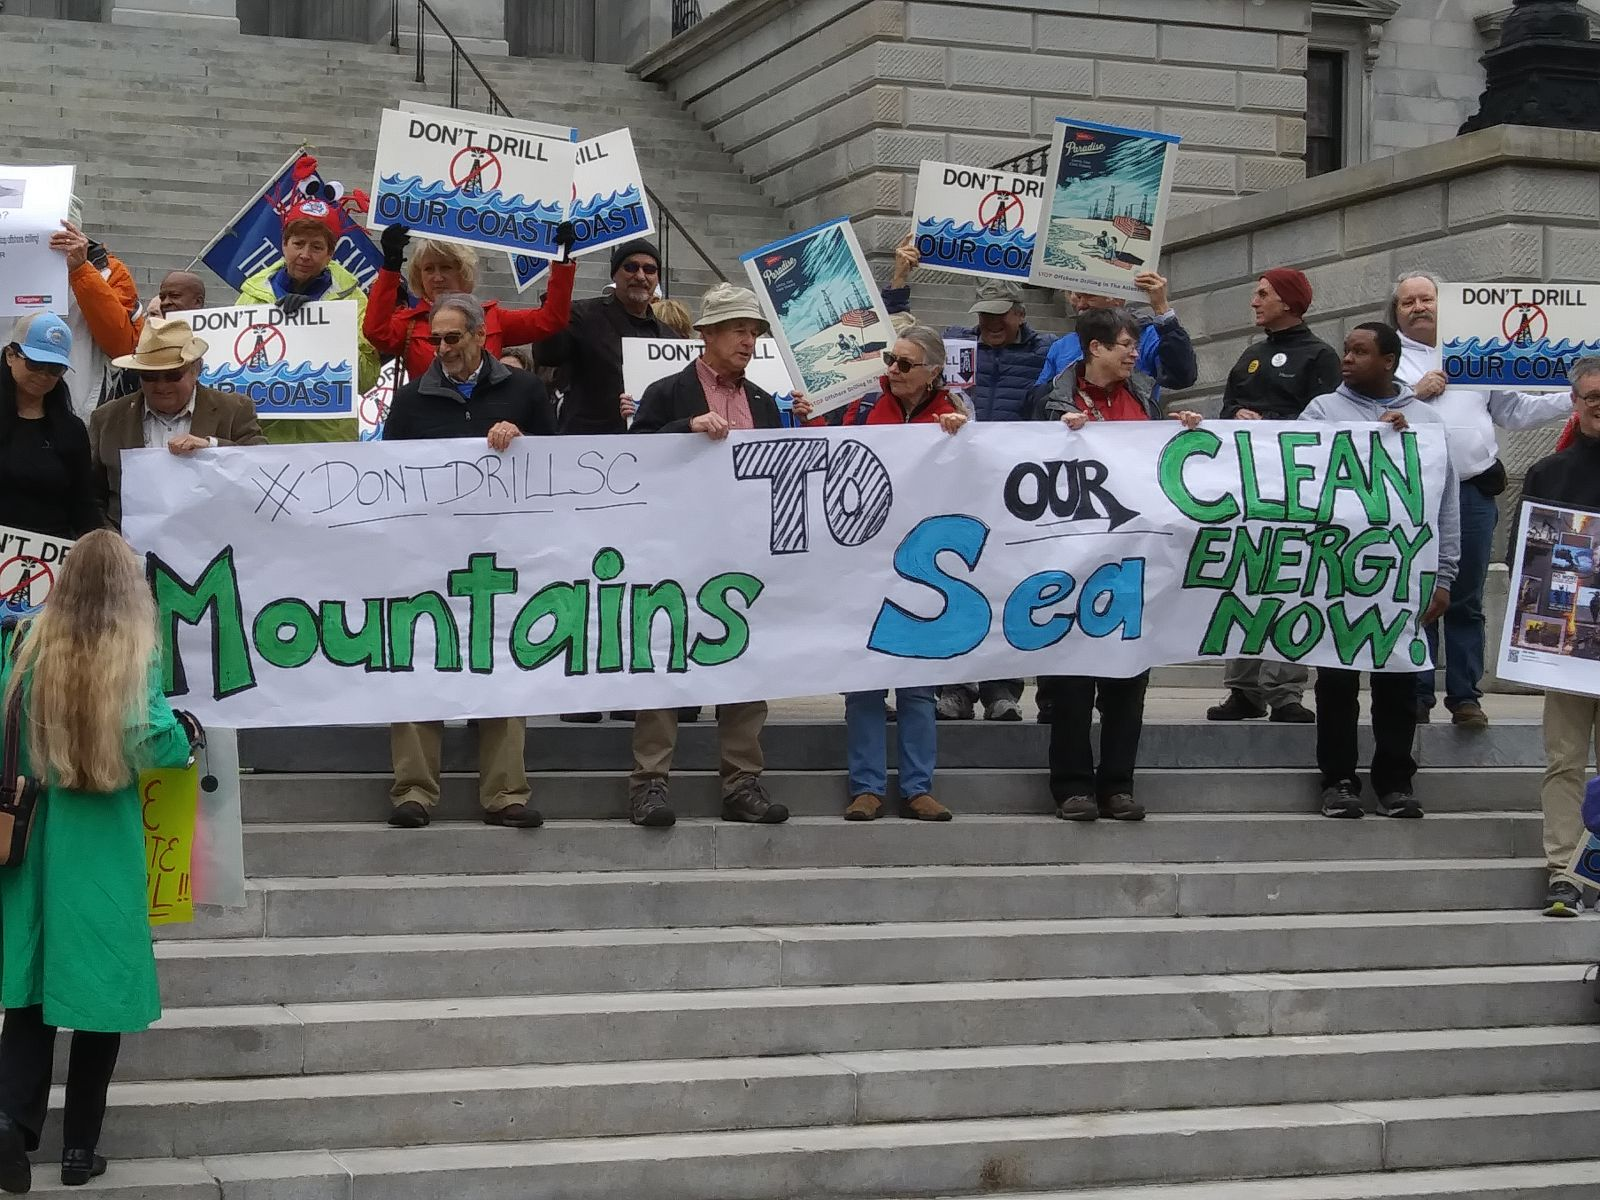 People rally at the Statehouse on Tuesday to oppose offshore drilling in South Carolina. (Photo/Travis Boland)